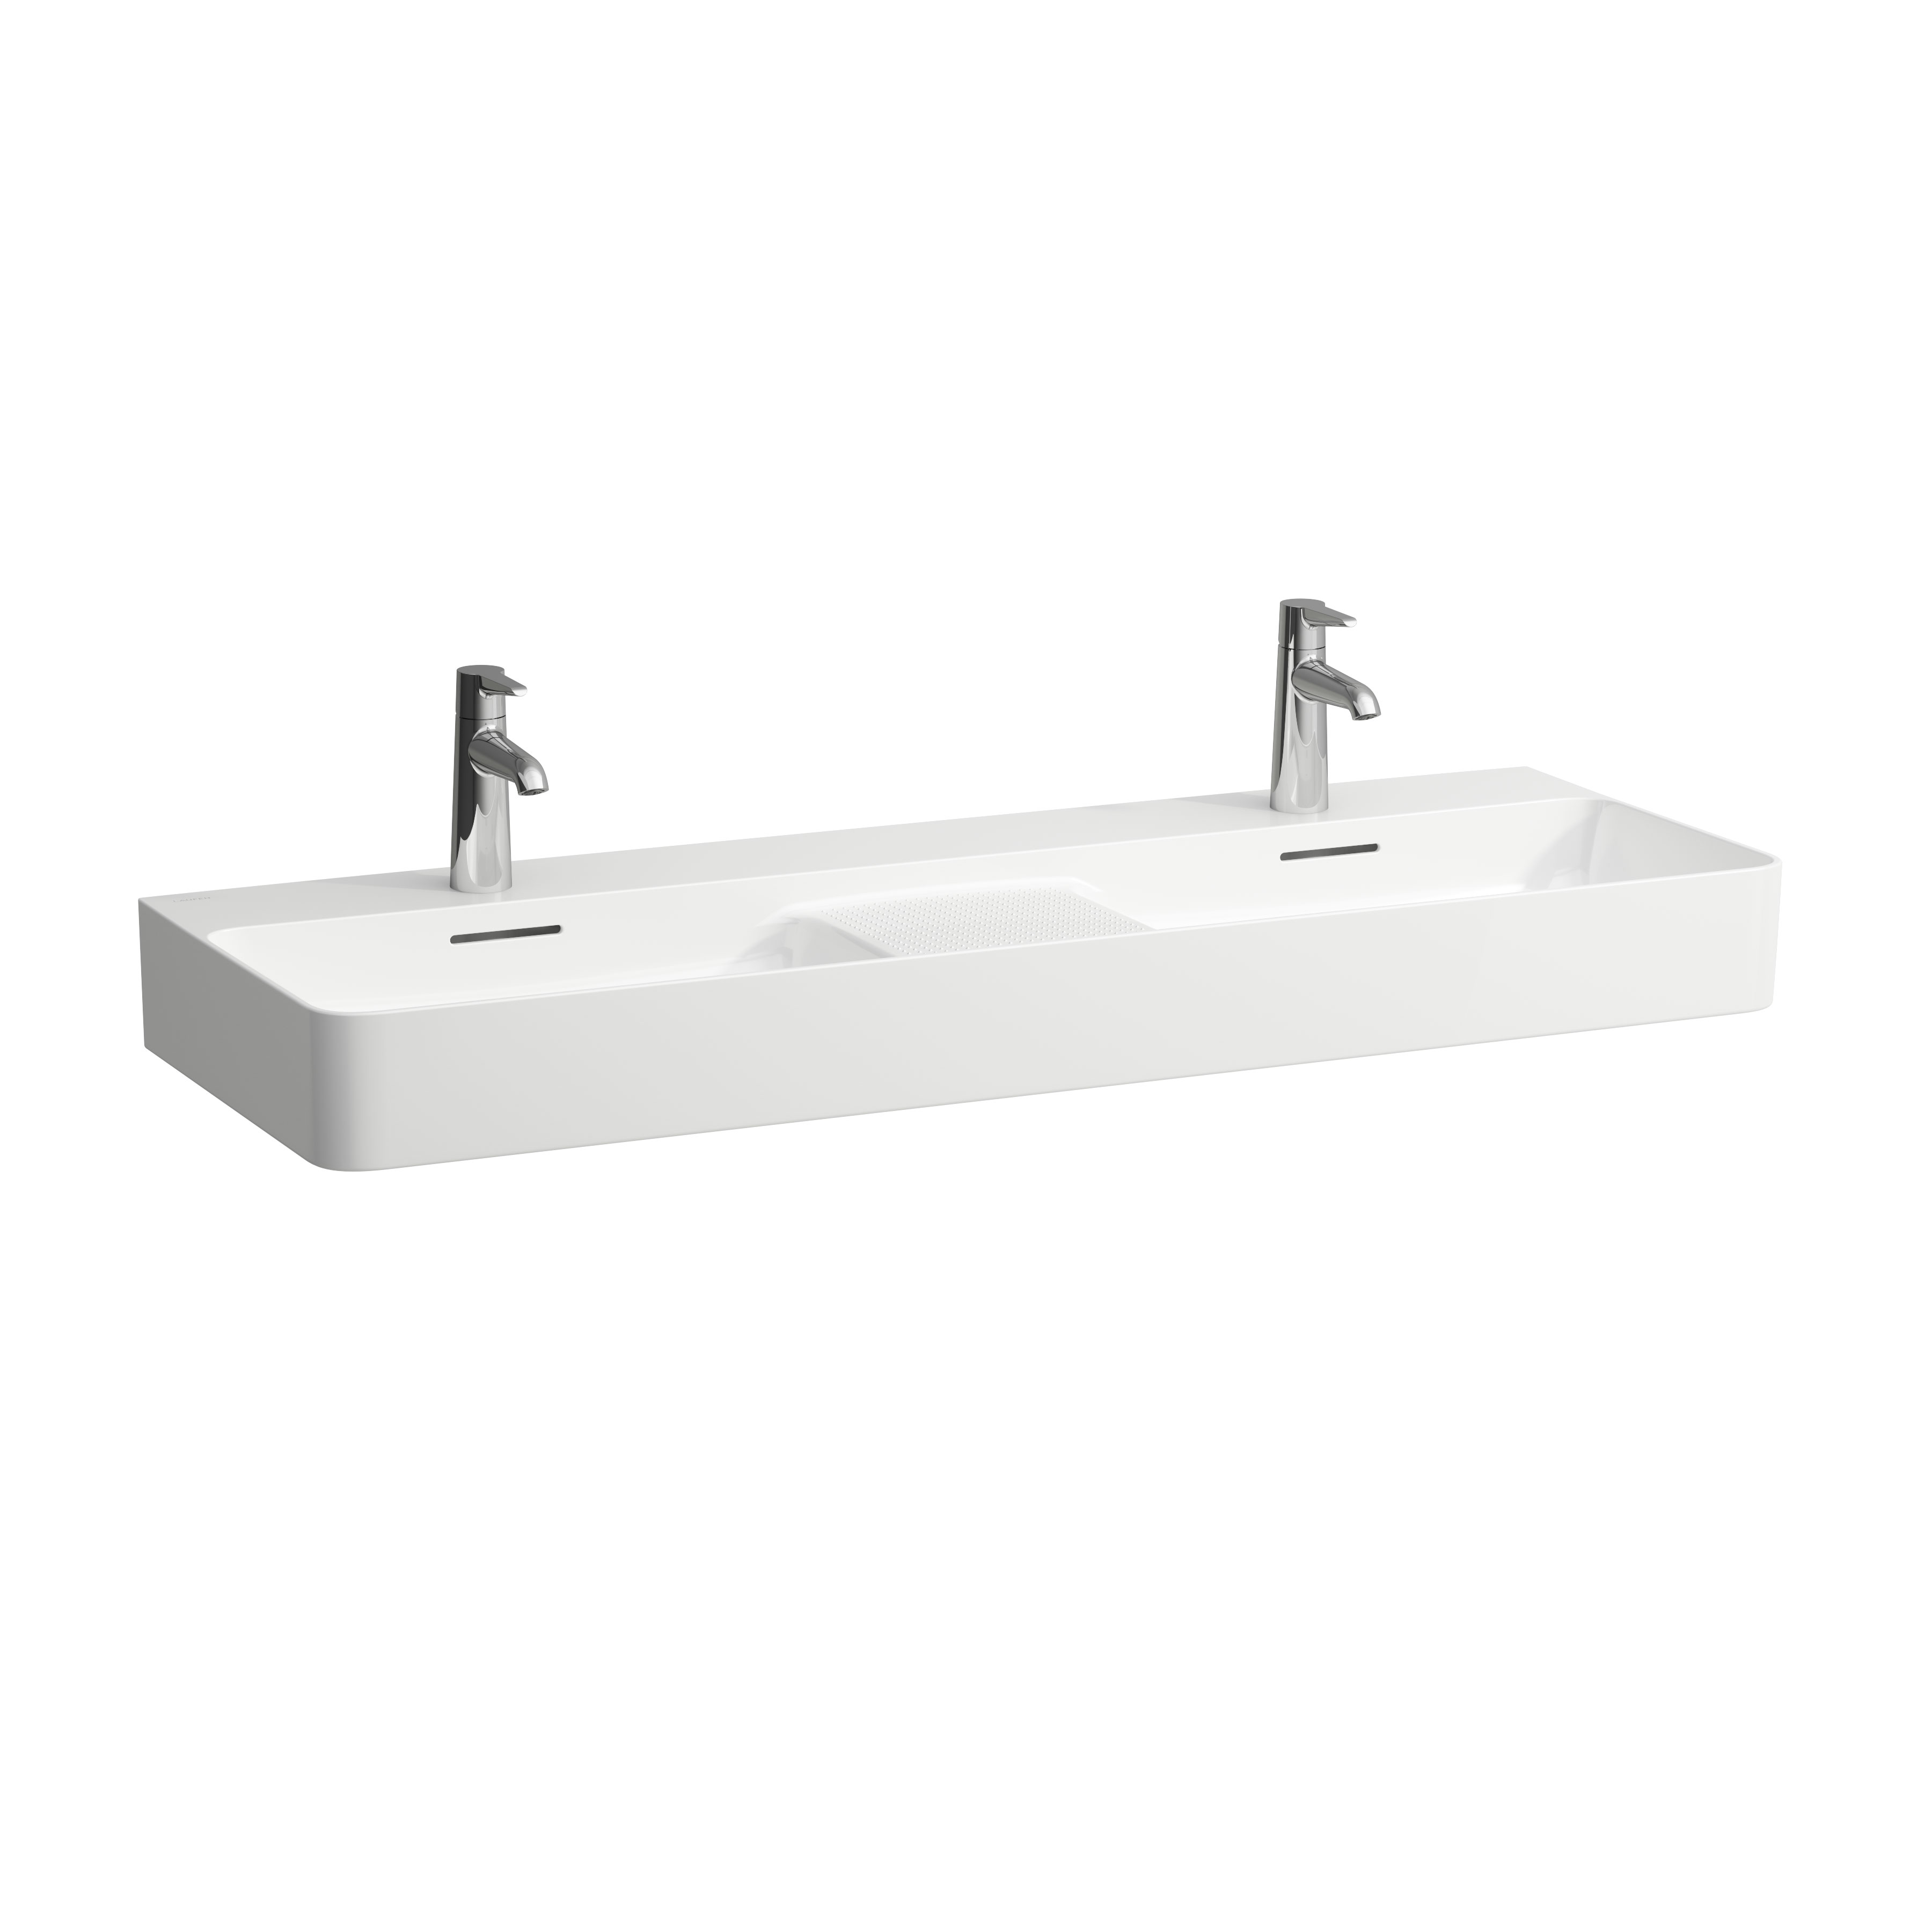 click on Double Basin with Semi-Wet Area image to enlarge